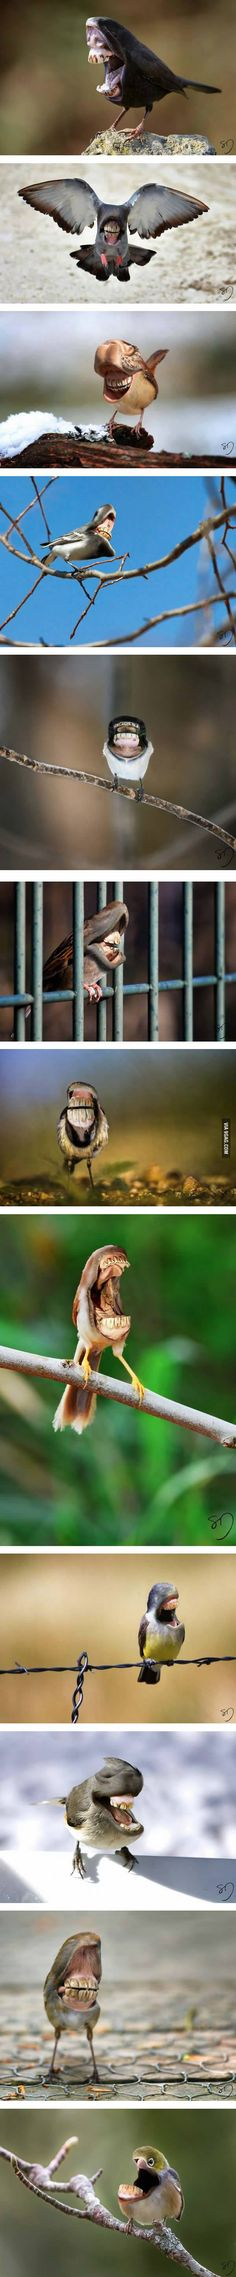 Big Mouth Birds: My Newest Series Of Hybrid Animals - 9GAG